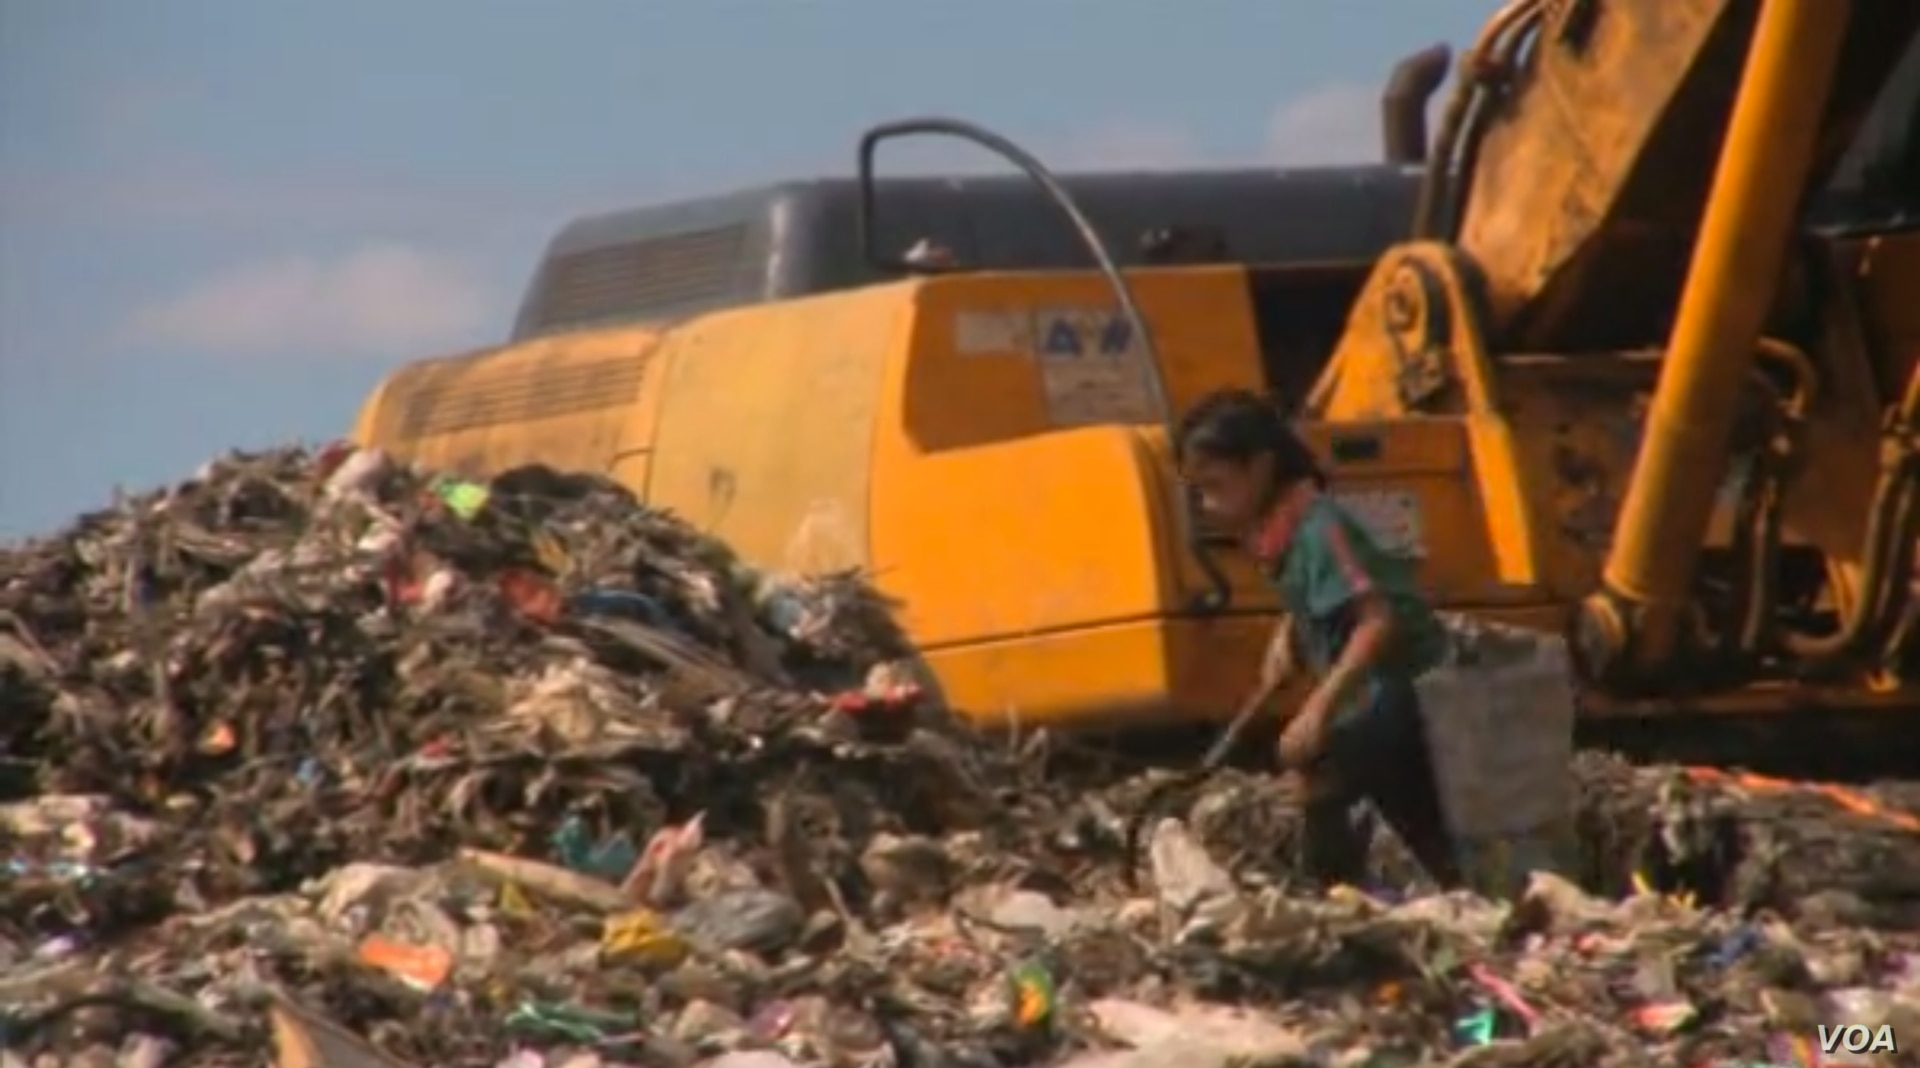 Men, women, and children dig through mountains of trash to earn money by collecting plastic and glass bottles for recycling.